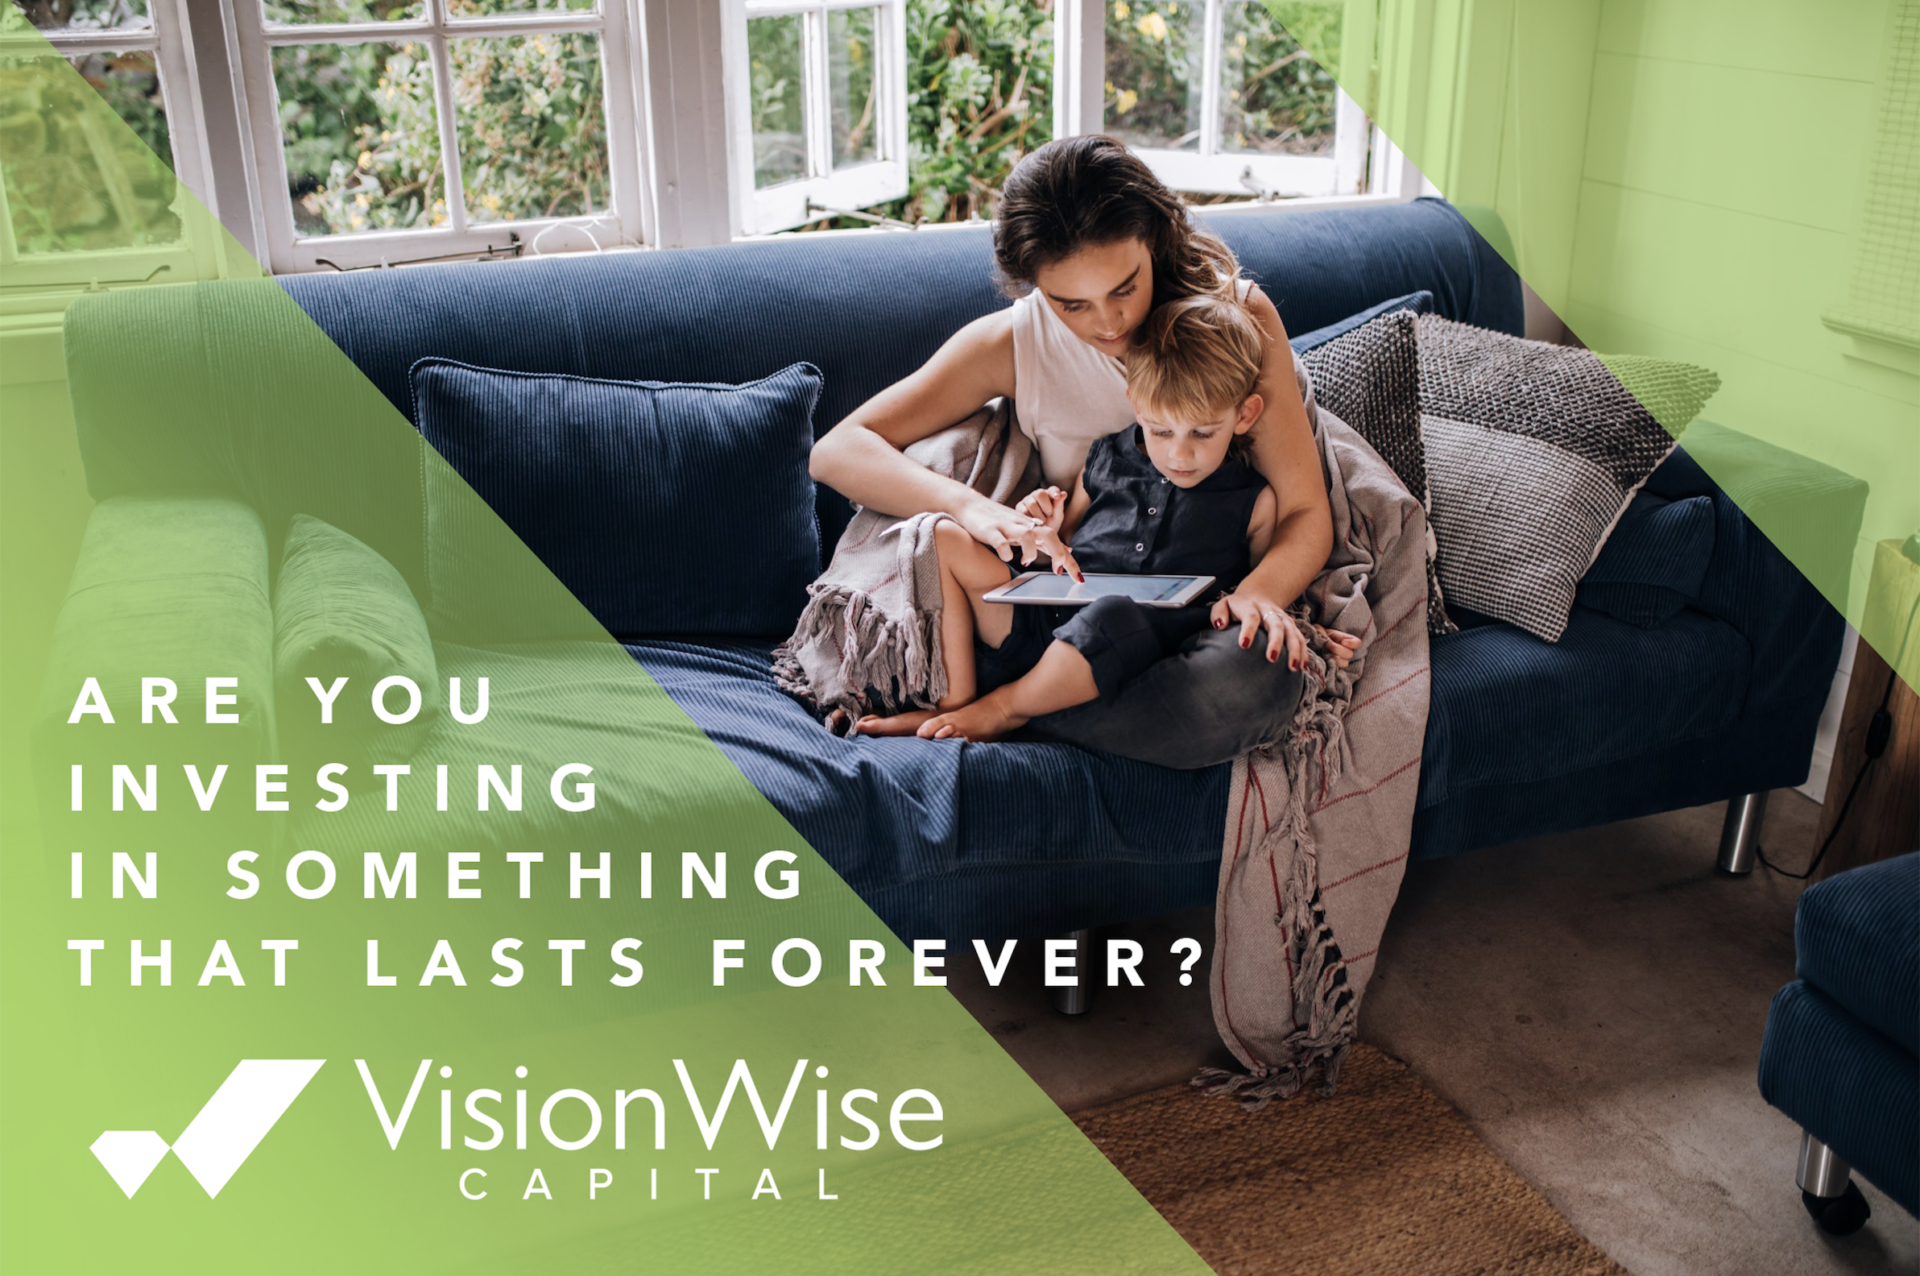 Are You Investing In Something That Lasts Forever?